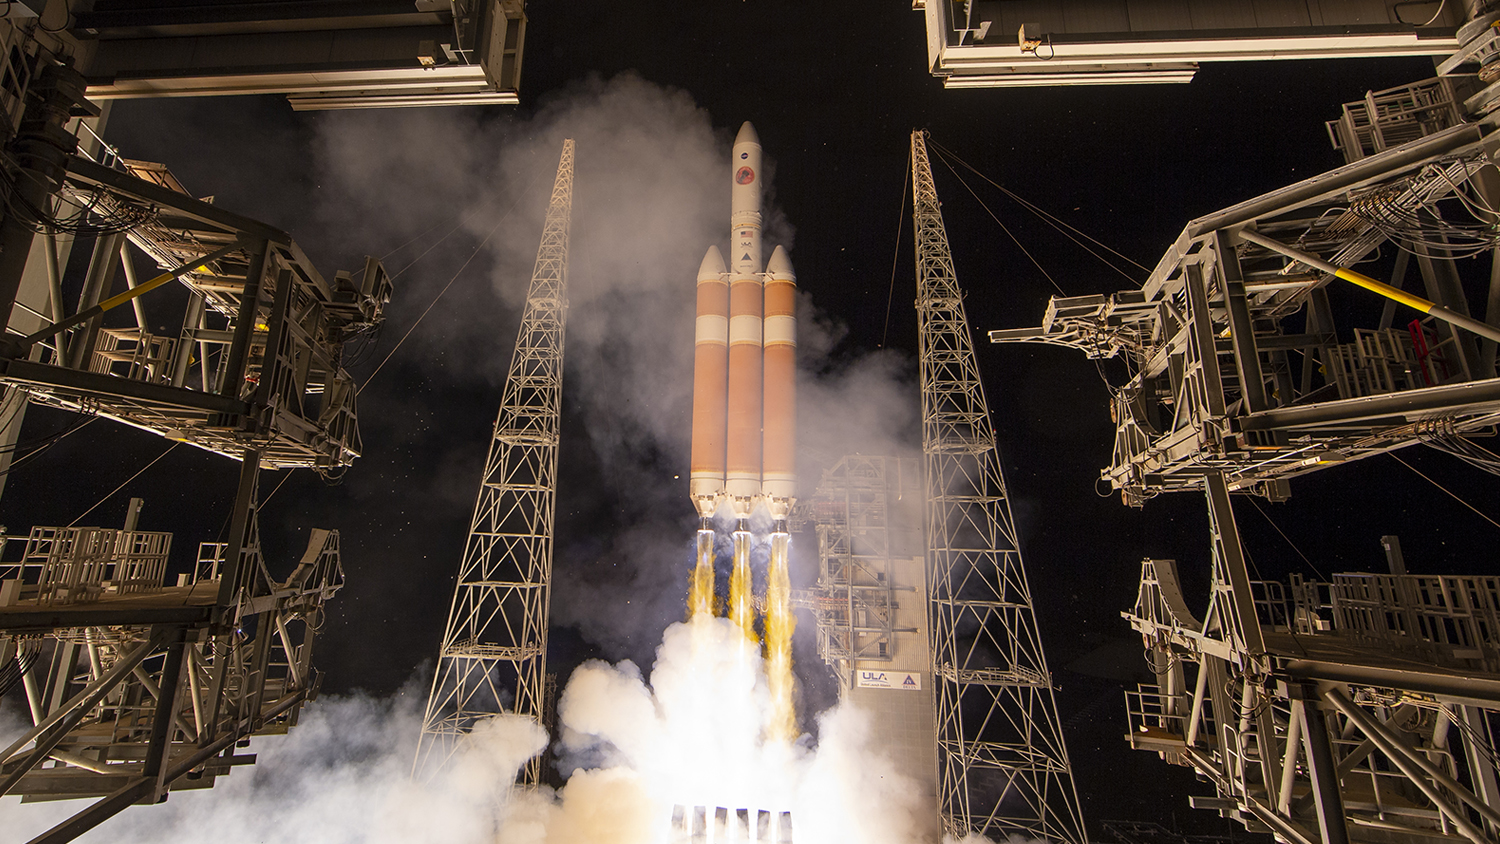 NASA Launches Mission to 'Touch the Sun